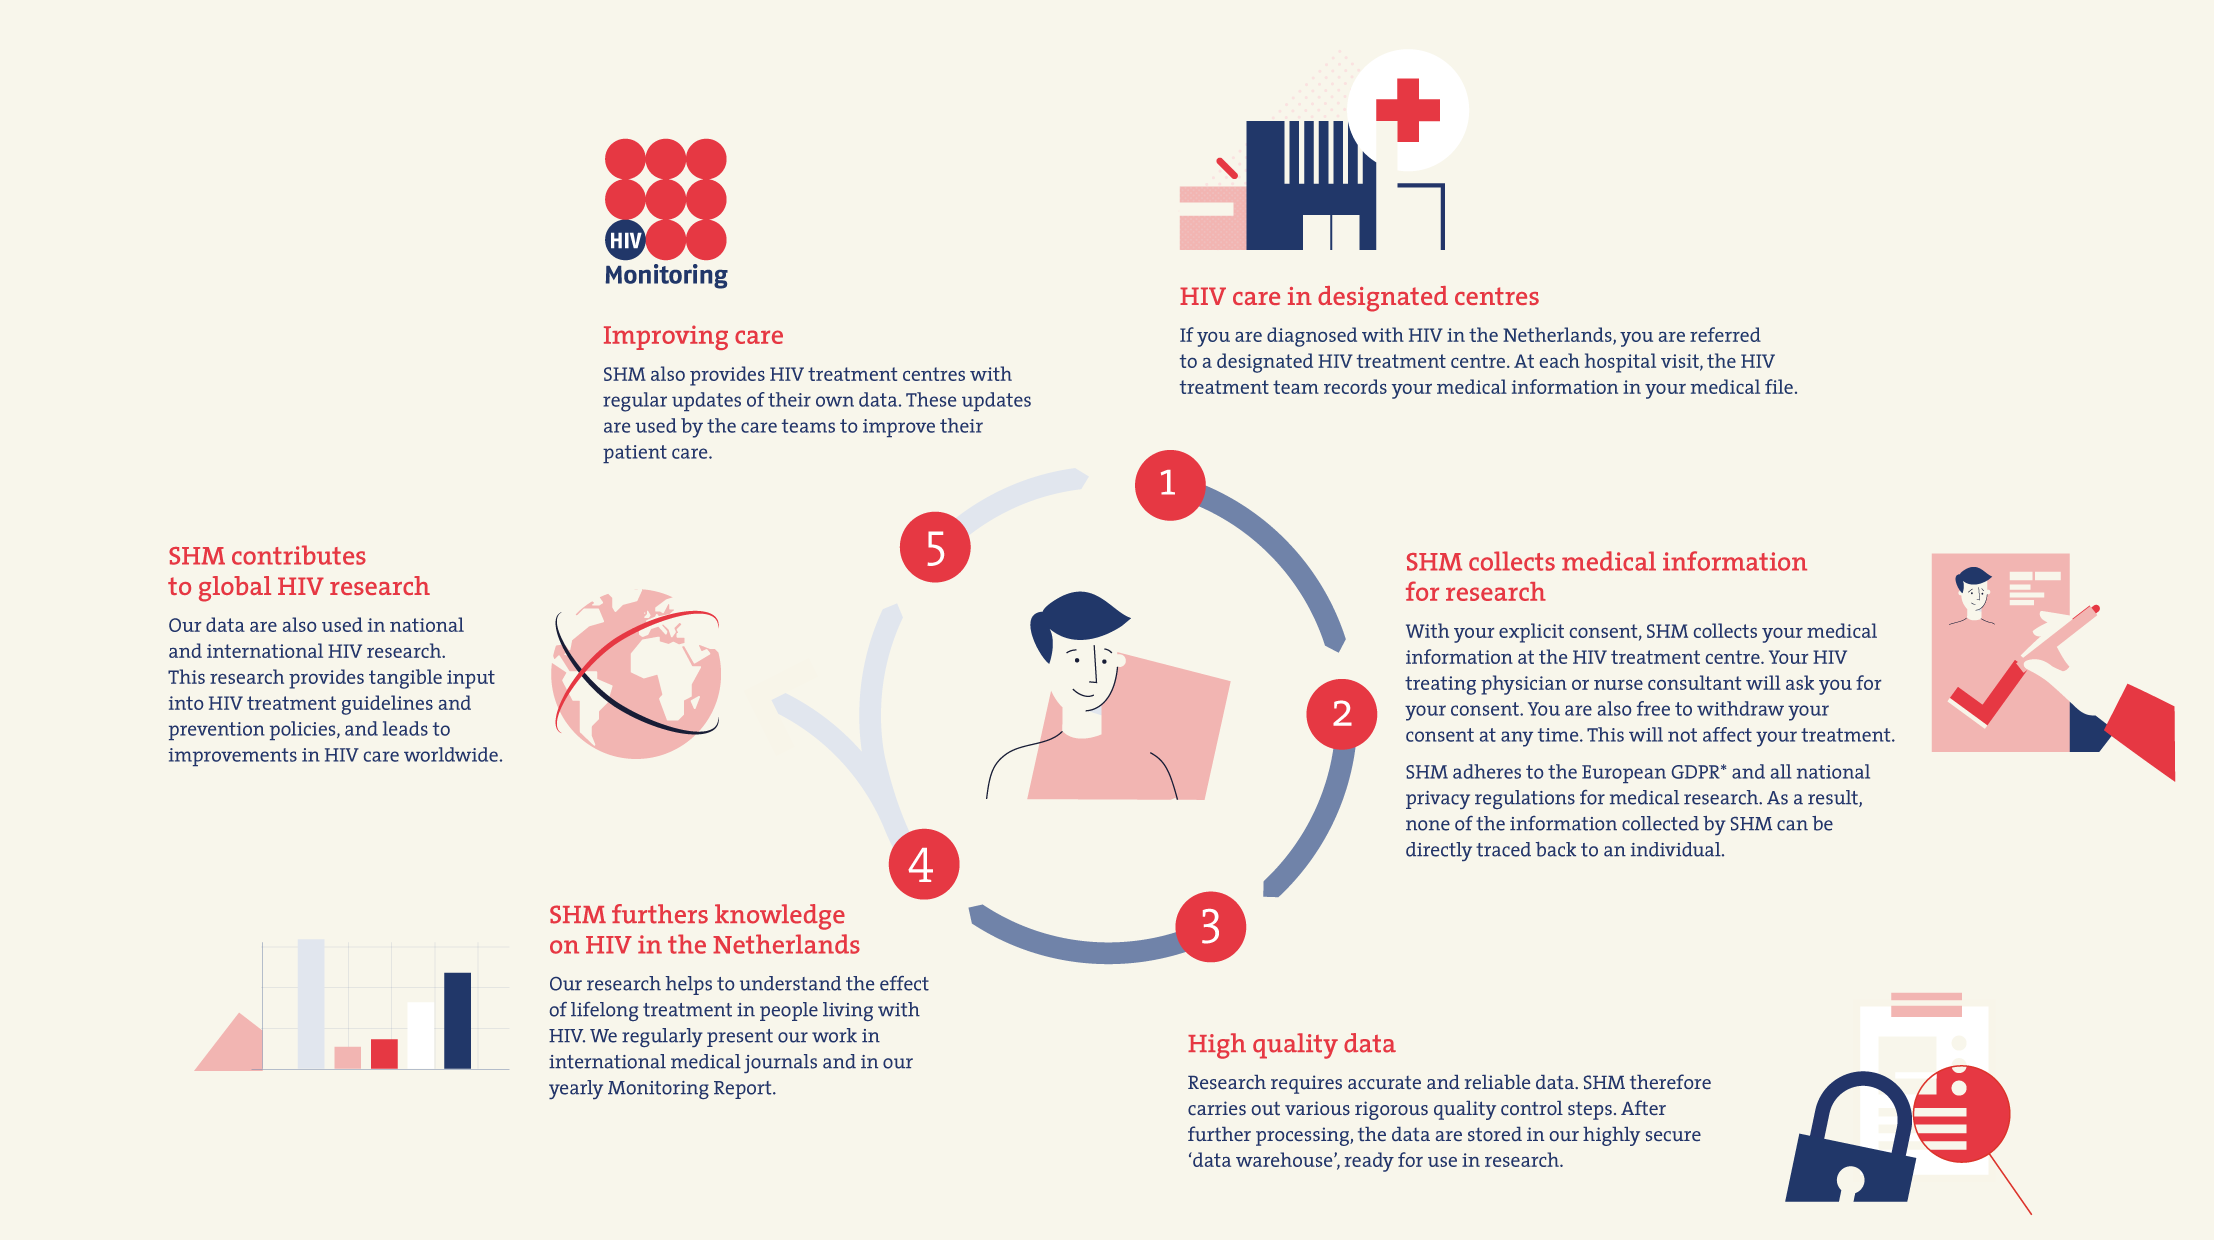 Infografías creadas para Stichting-HIV-Monitoring por monsieur madame